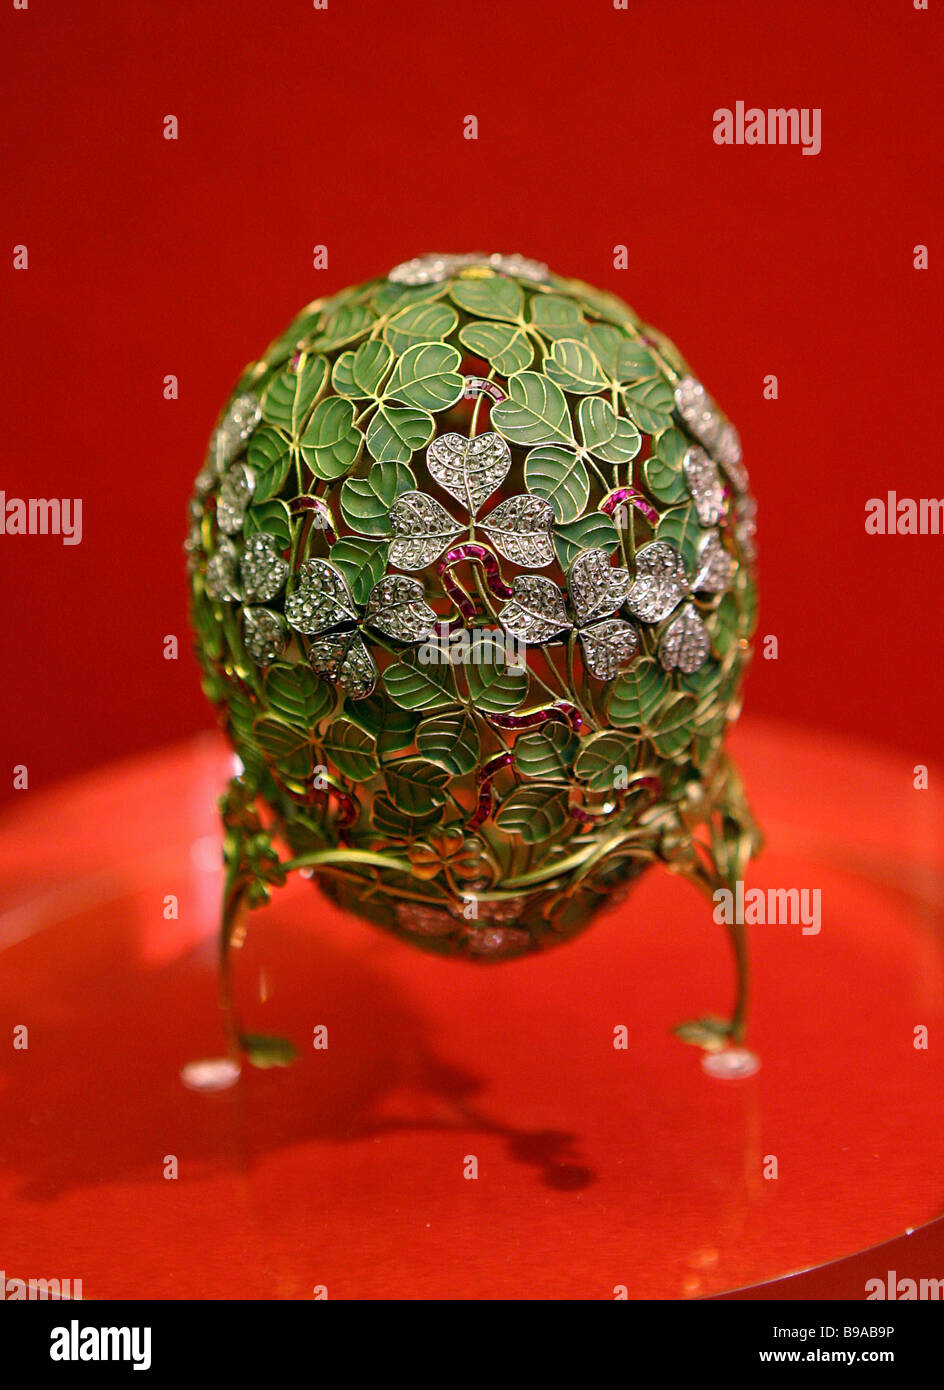 This Clover openwork Easter egg of Faberge Co 1902 is exhibited at the exposition Russian Emperors and the Armory - Stock Image